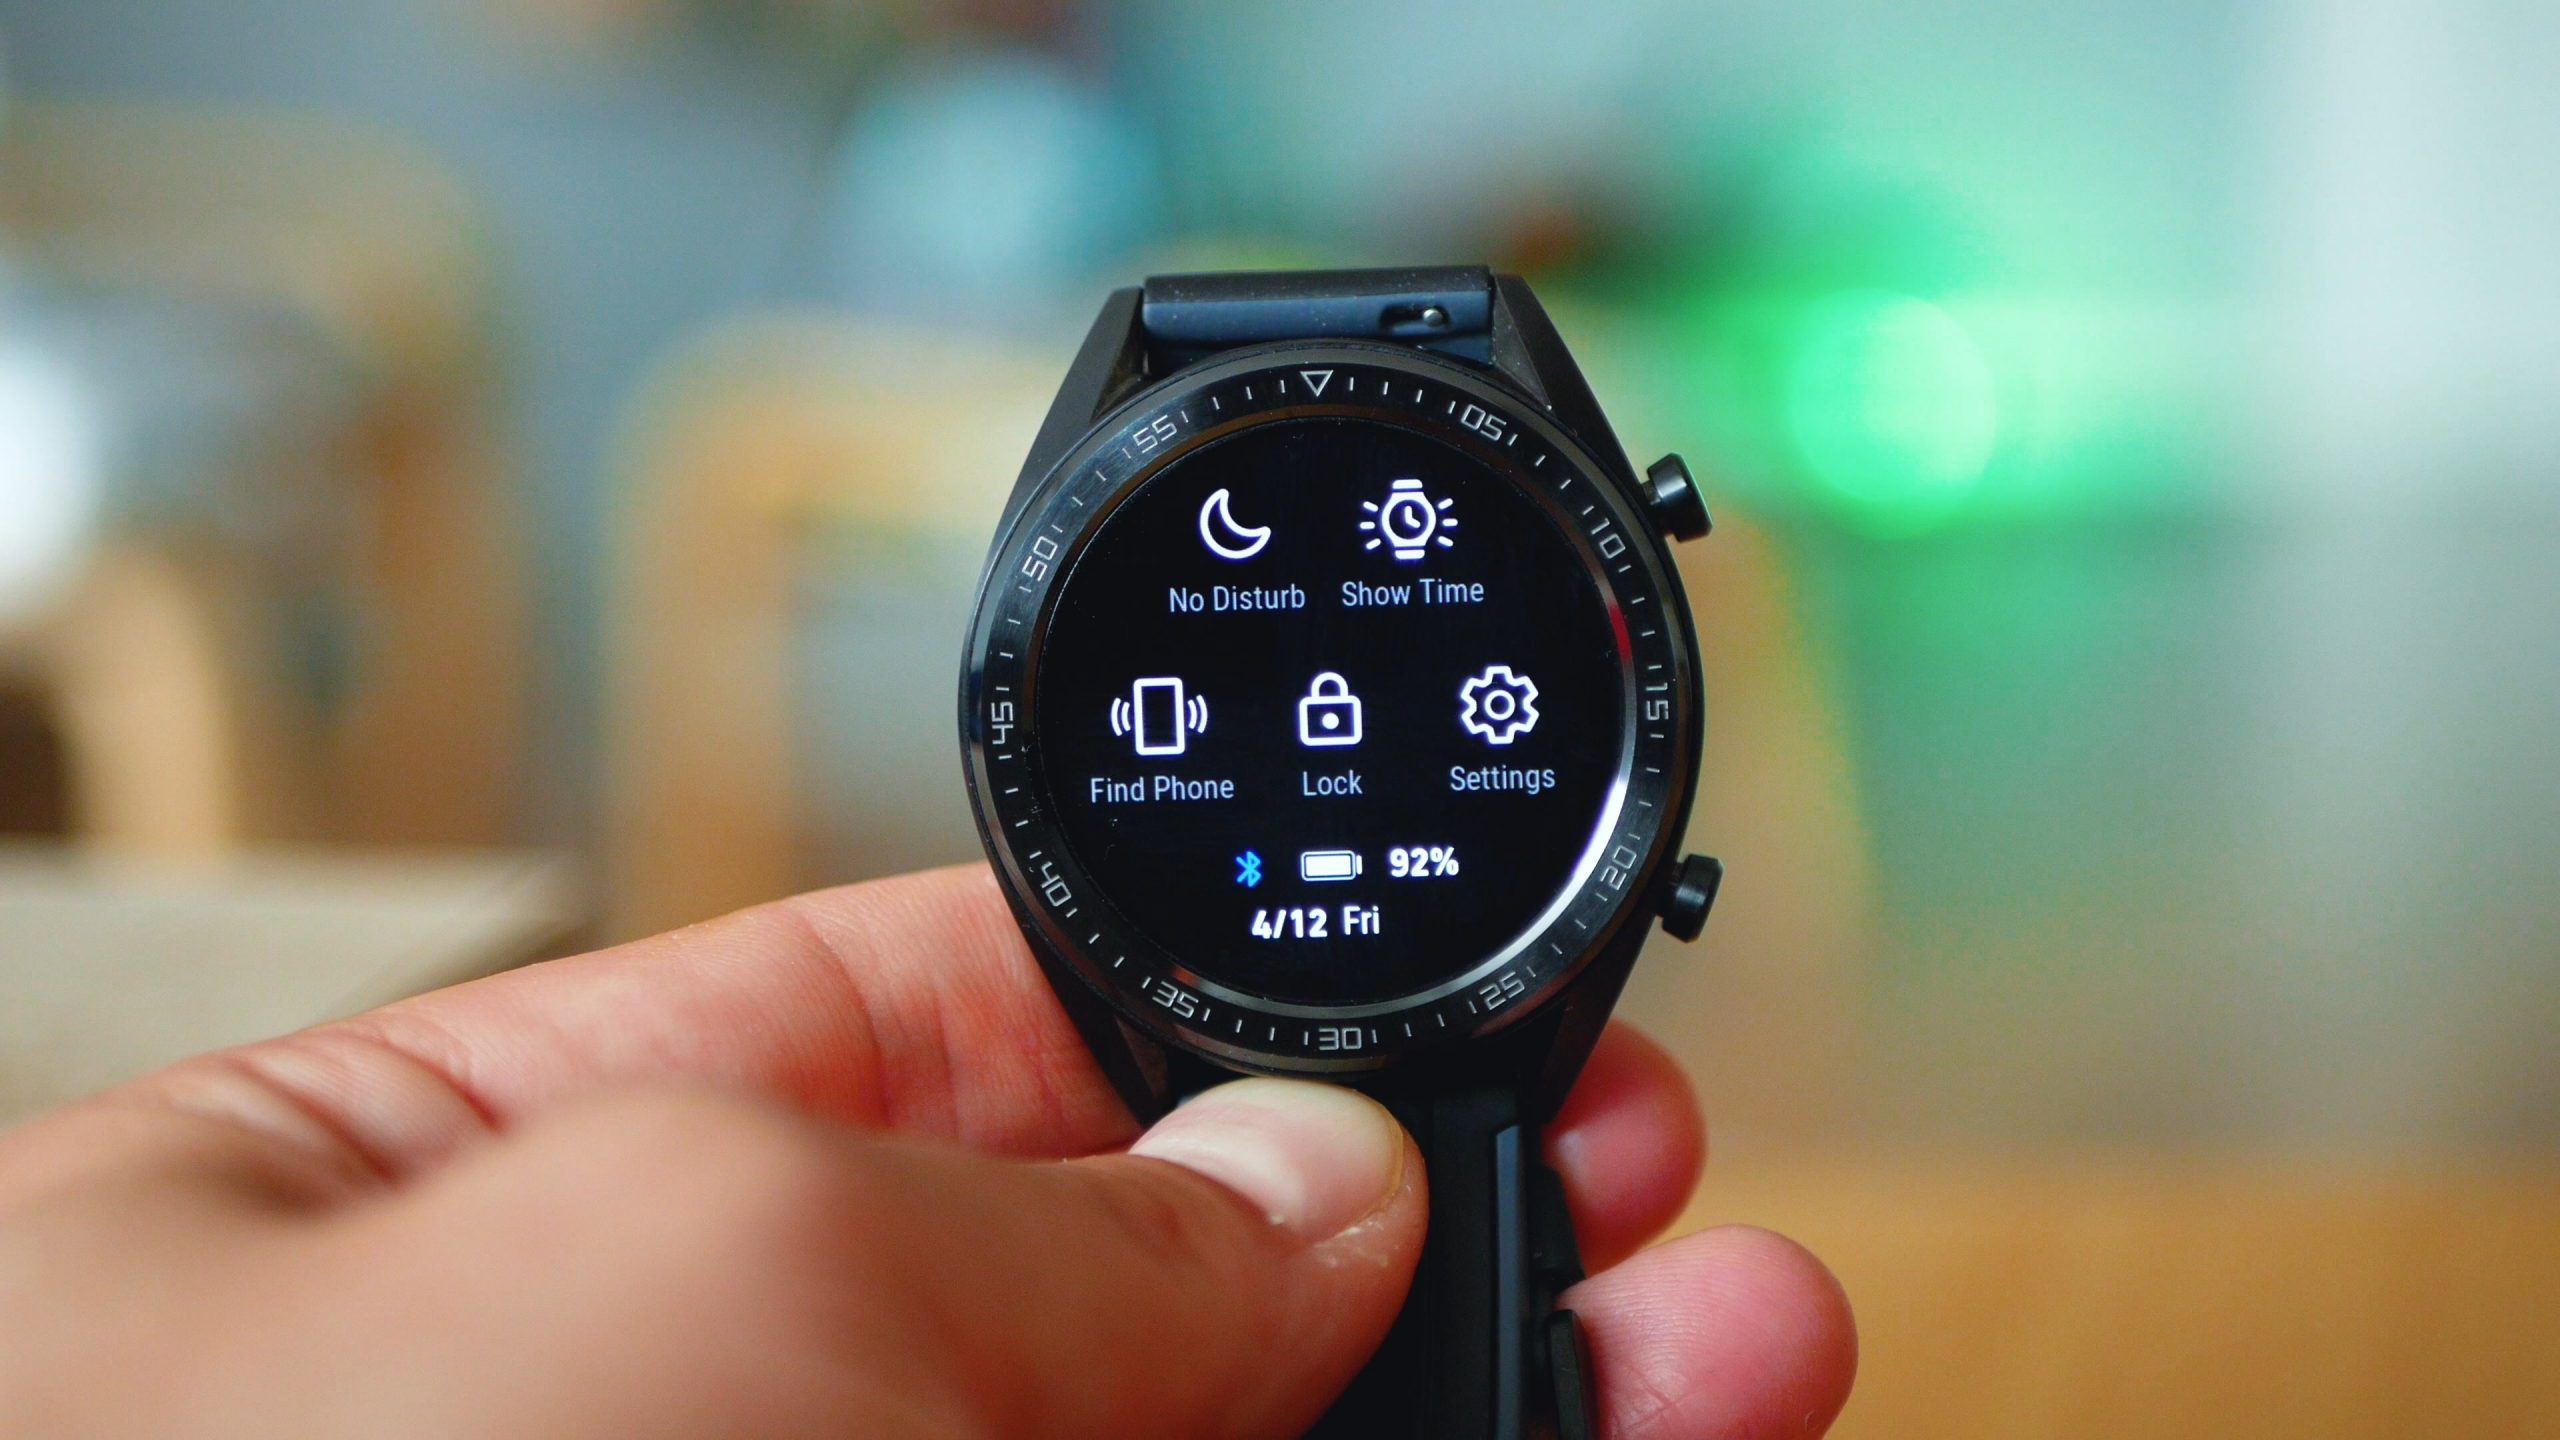 Huawei Watch GT quick toggles display